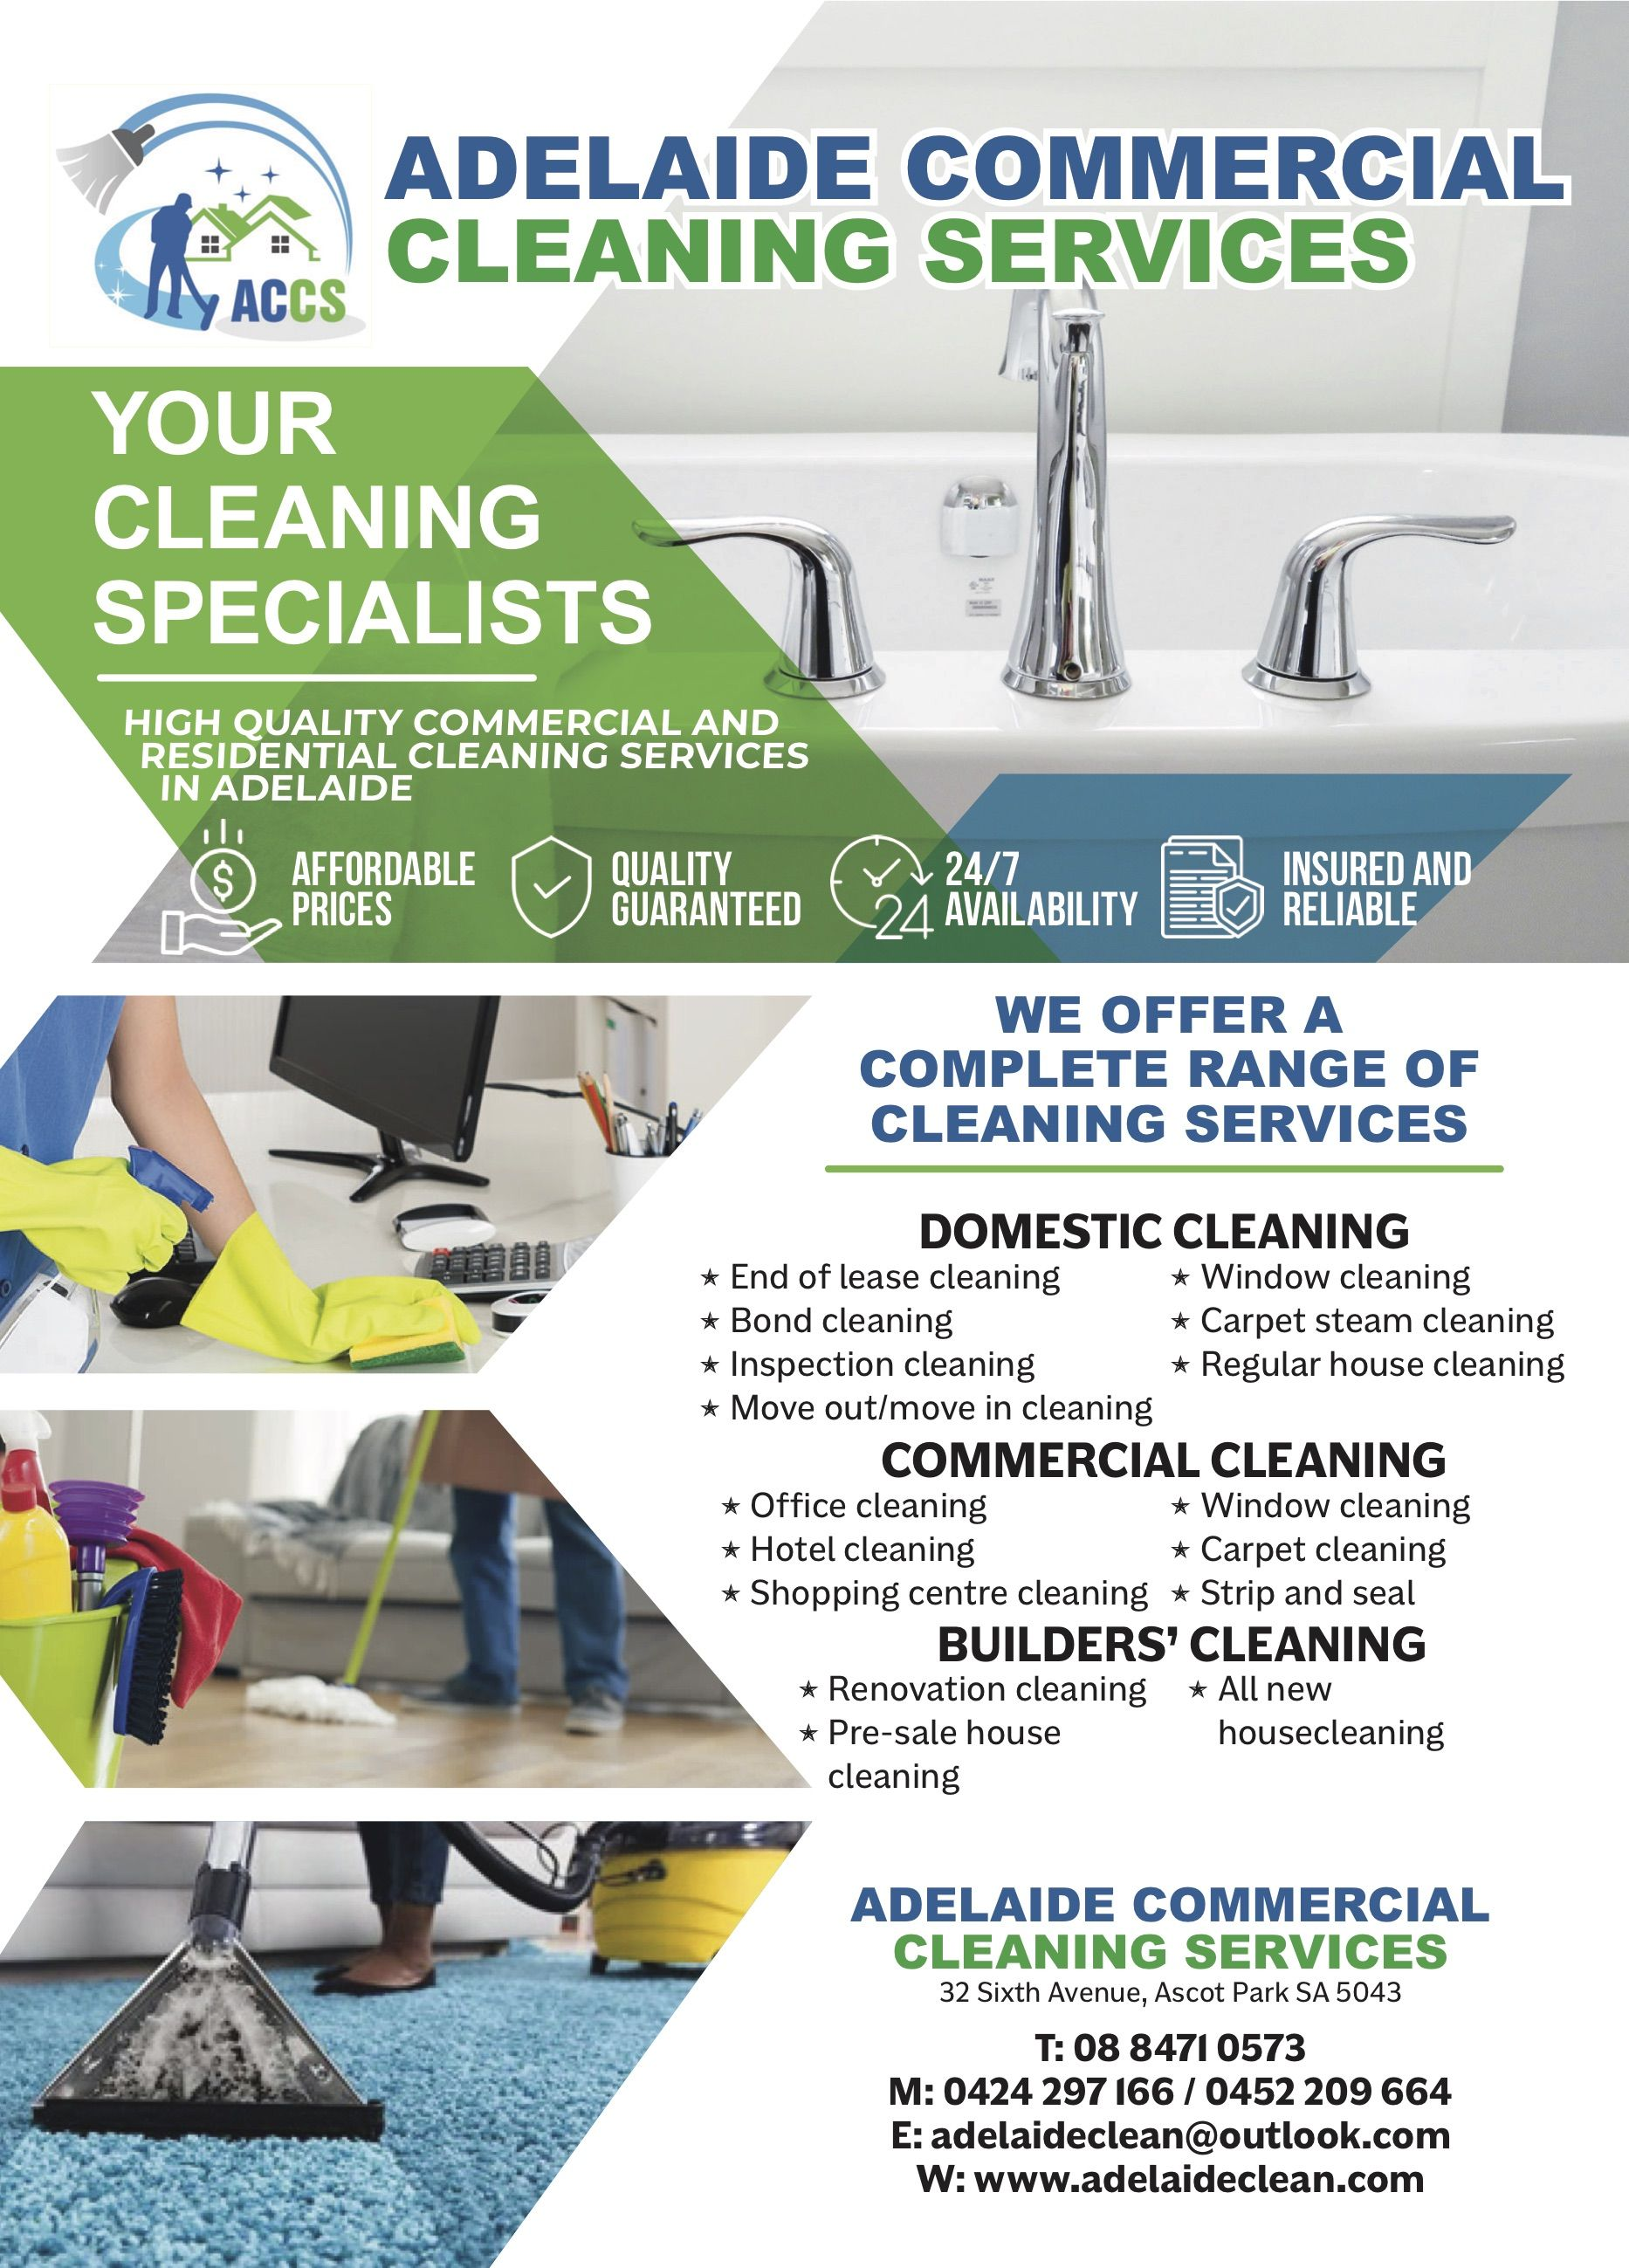 A5 flyer for adelaide commercial cleaning services